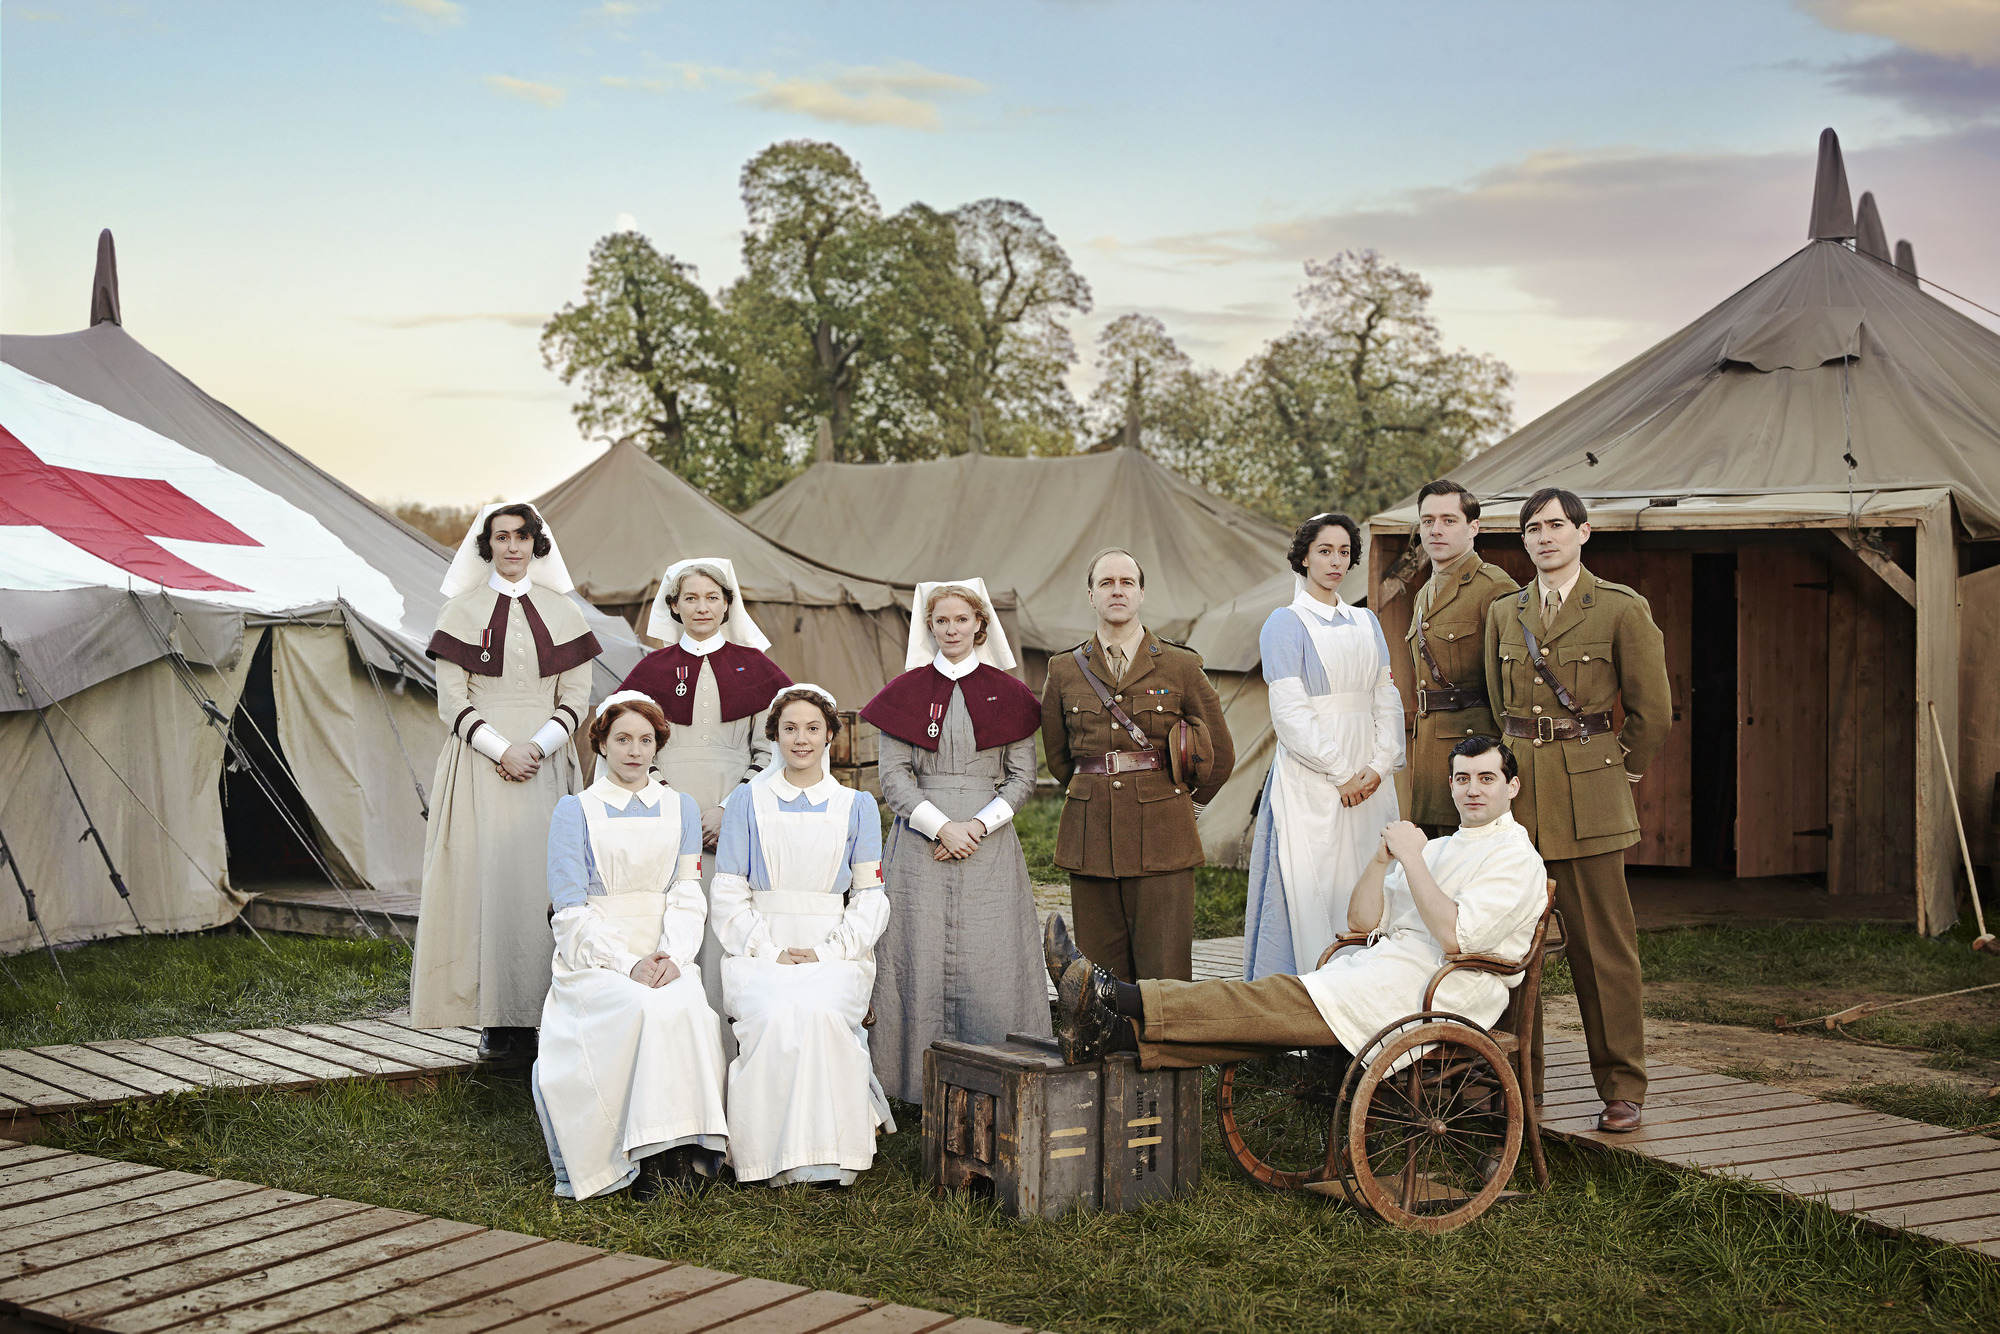 Programme Name: The Crimson Field - TX: n/a - Episode: Generics (No. n/a) - Picture Shows: (c/w from back left) Sister Joan Livesey (SURANNE JONES), Sister Margaret Quayle (KERRY FOX), Matron Grace Carter (HERMIONE NORRIS), Lieutenant-Colonel Roland Brett (KEVIN DOYLE), Kitty Trevelyan (OONA CHAPLIN), Captain Thomas Gillan (RICHARD RANKIN), Captain Miles Hesketh-Thorne (ALEX WYNDHAM), Corporal Peter Foley (JACK GORDON), Flora Marshall (ALICE ST CLAIR), Rosalie Berwick (MARIANNE OLDHAM) - (C) BBC - Photographer: Todd Anthony